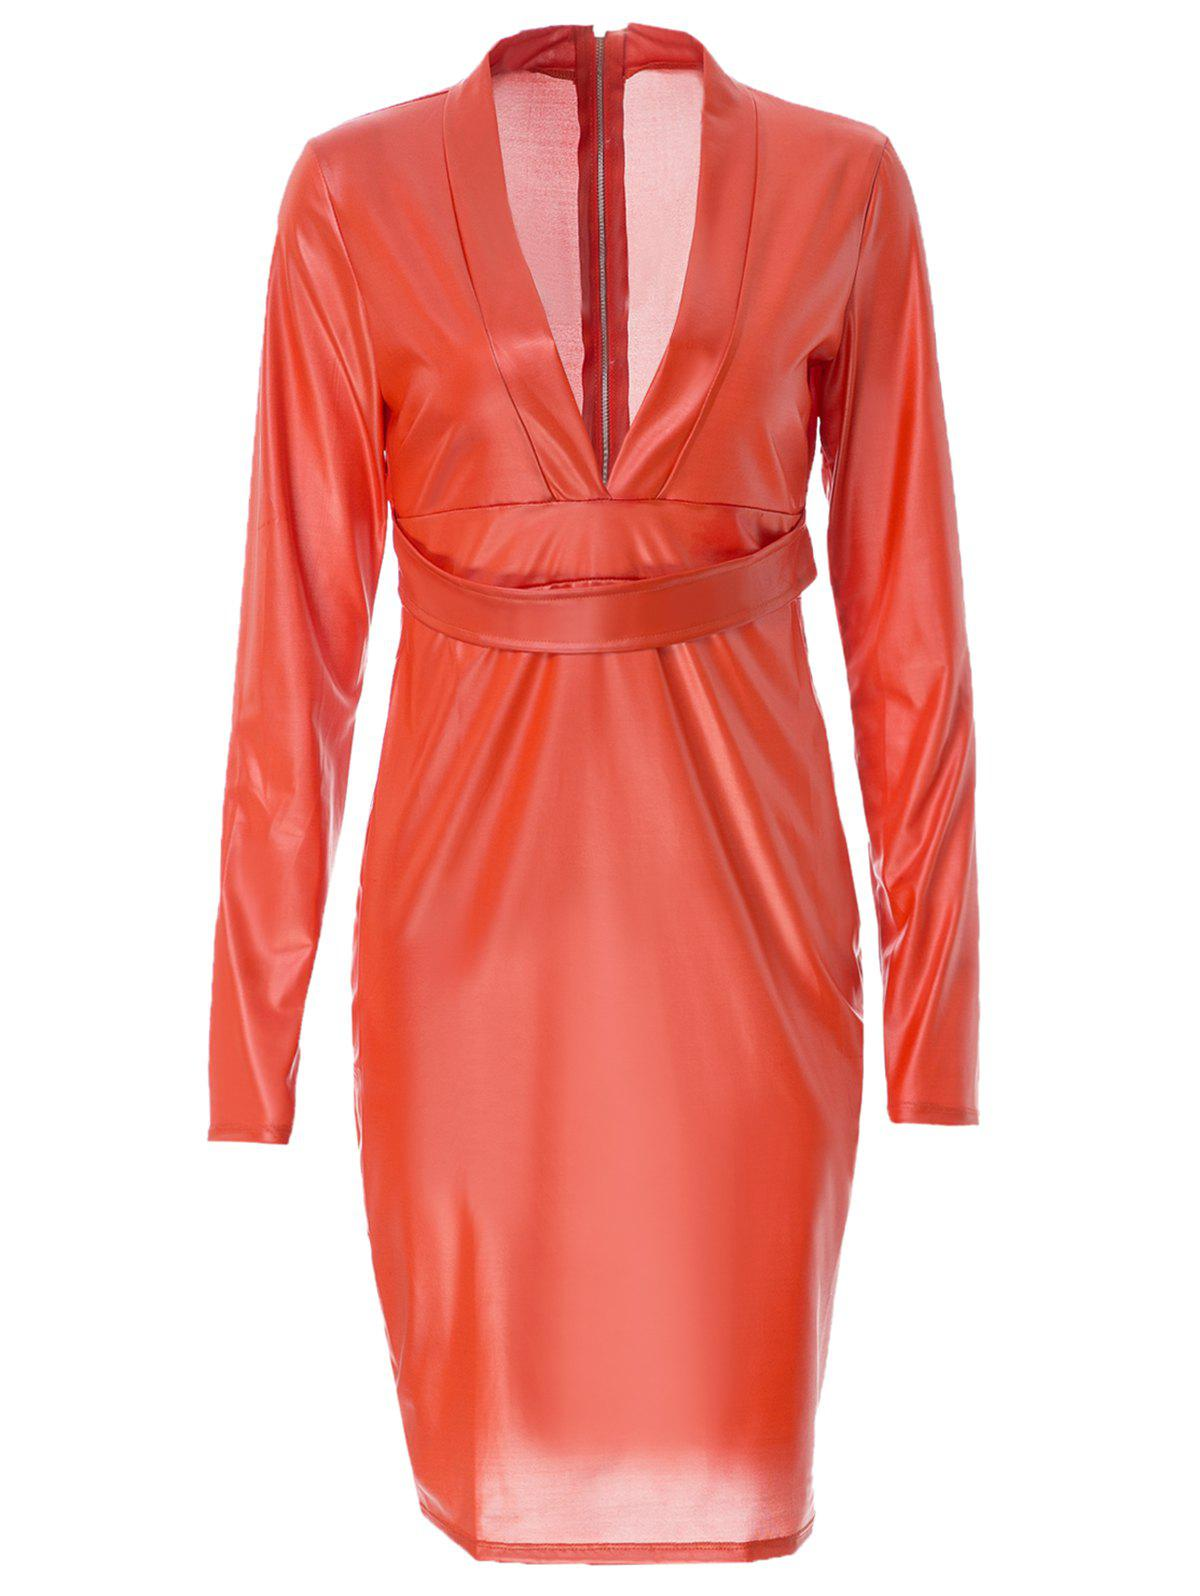 Sexy Style Plunging Neck Faux Leather Packet Buttock Long Sleeve Dress For Women - RED M